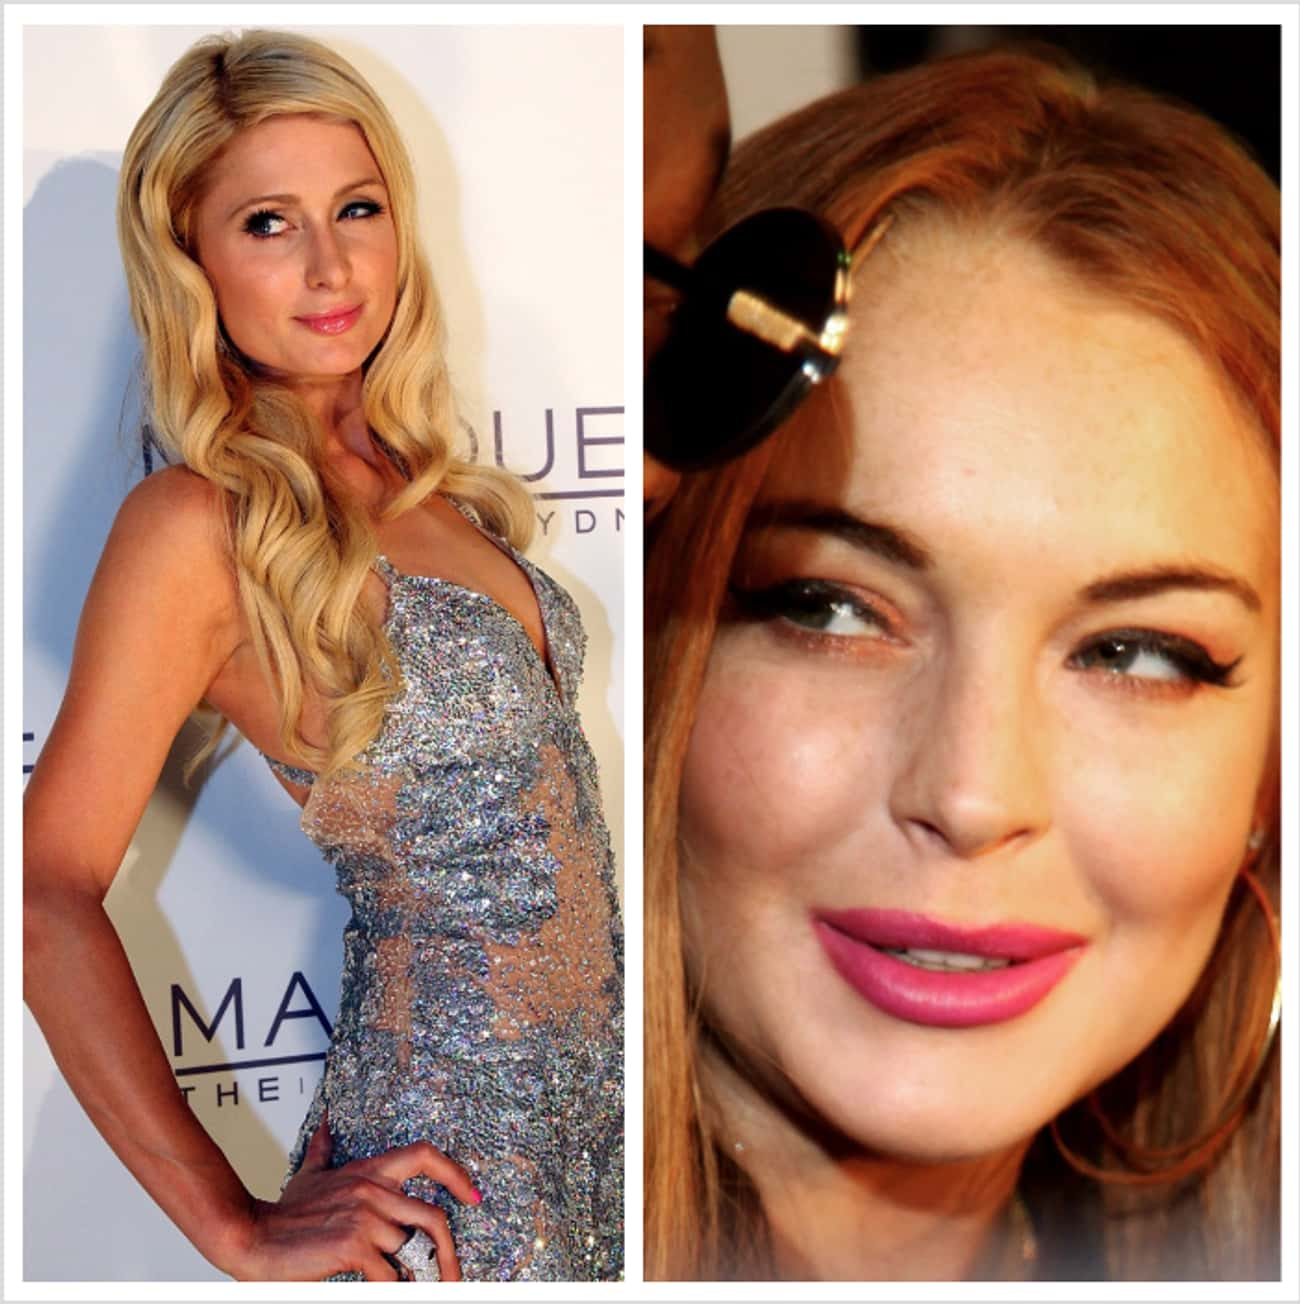 Paris Hilton & Lindsay Lohan is listed (or ranked) 1 on the list Celebrities Who Broke Up with Their BFFs